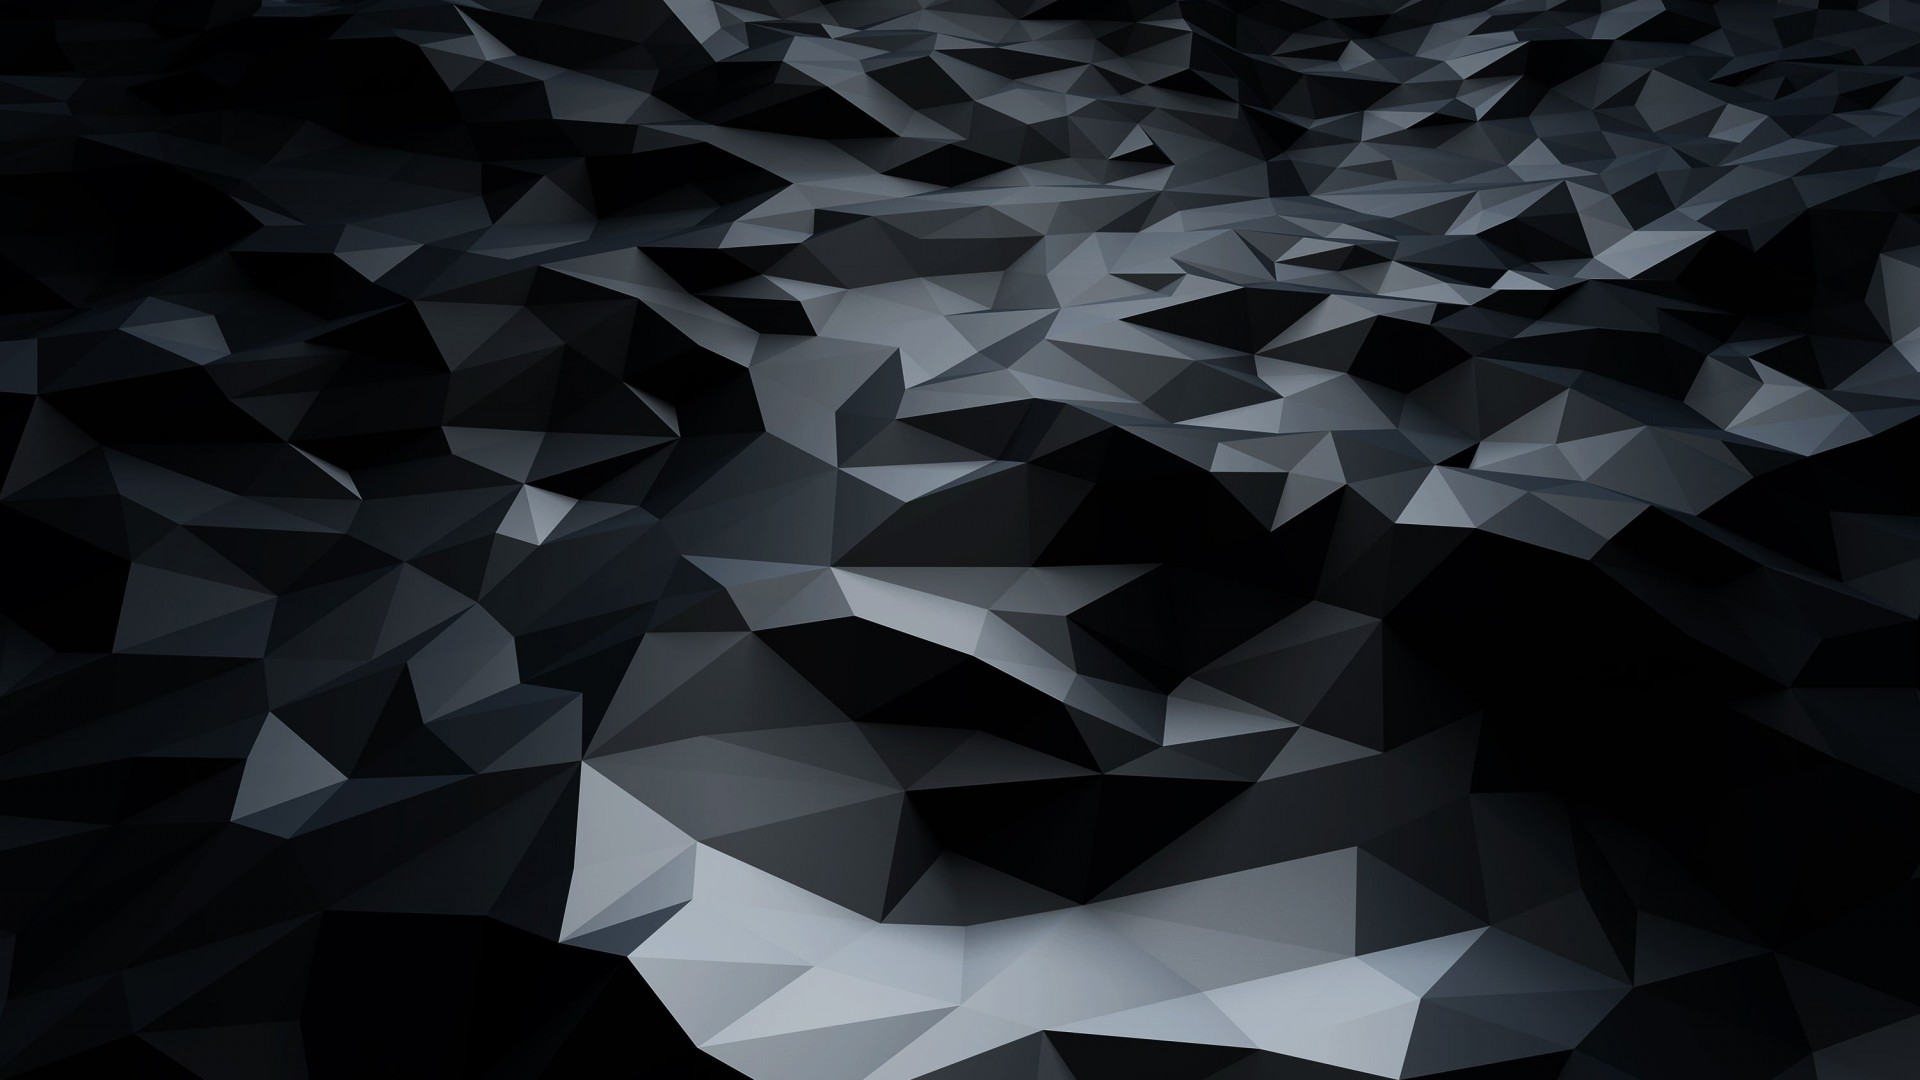 Abstract Black Low Poly Wallpaper for Desktop 1920x1080